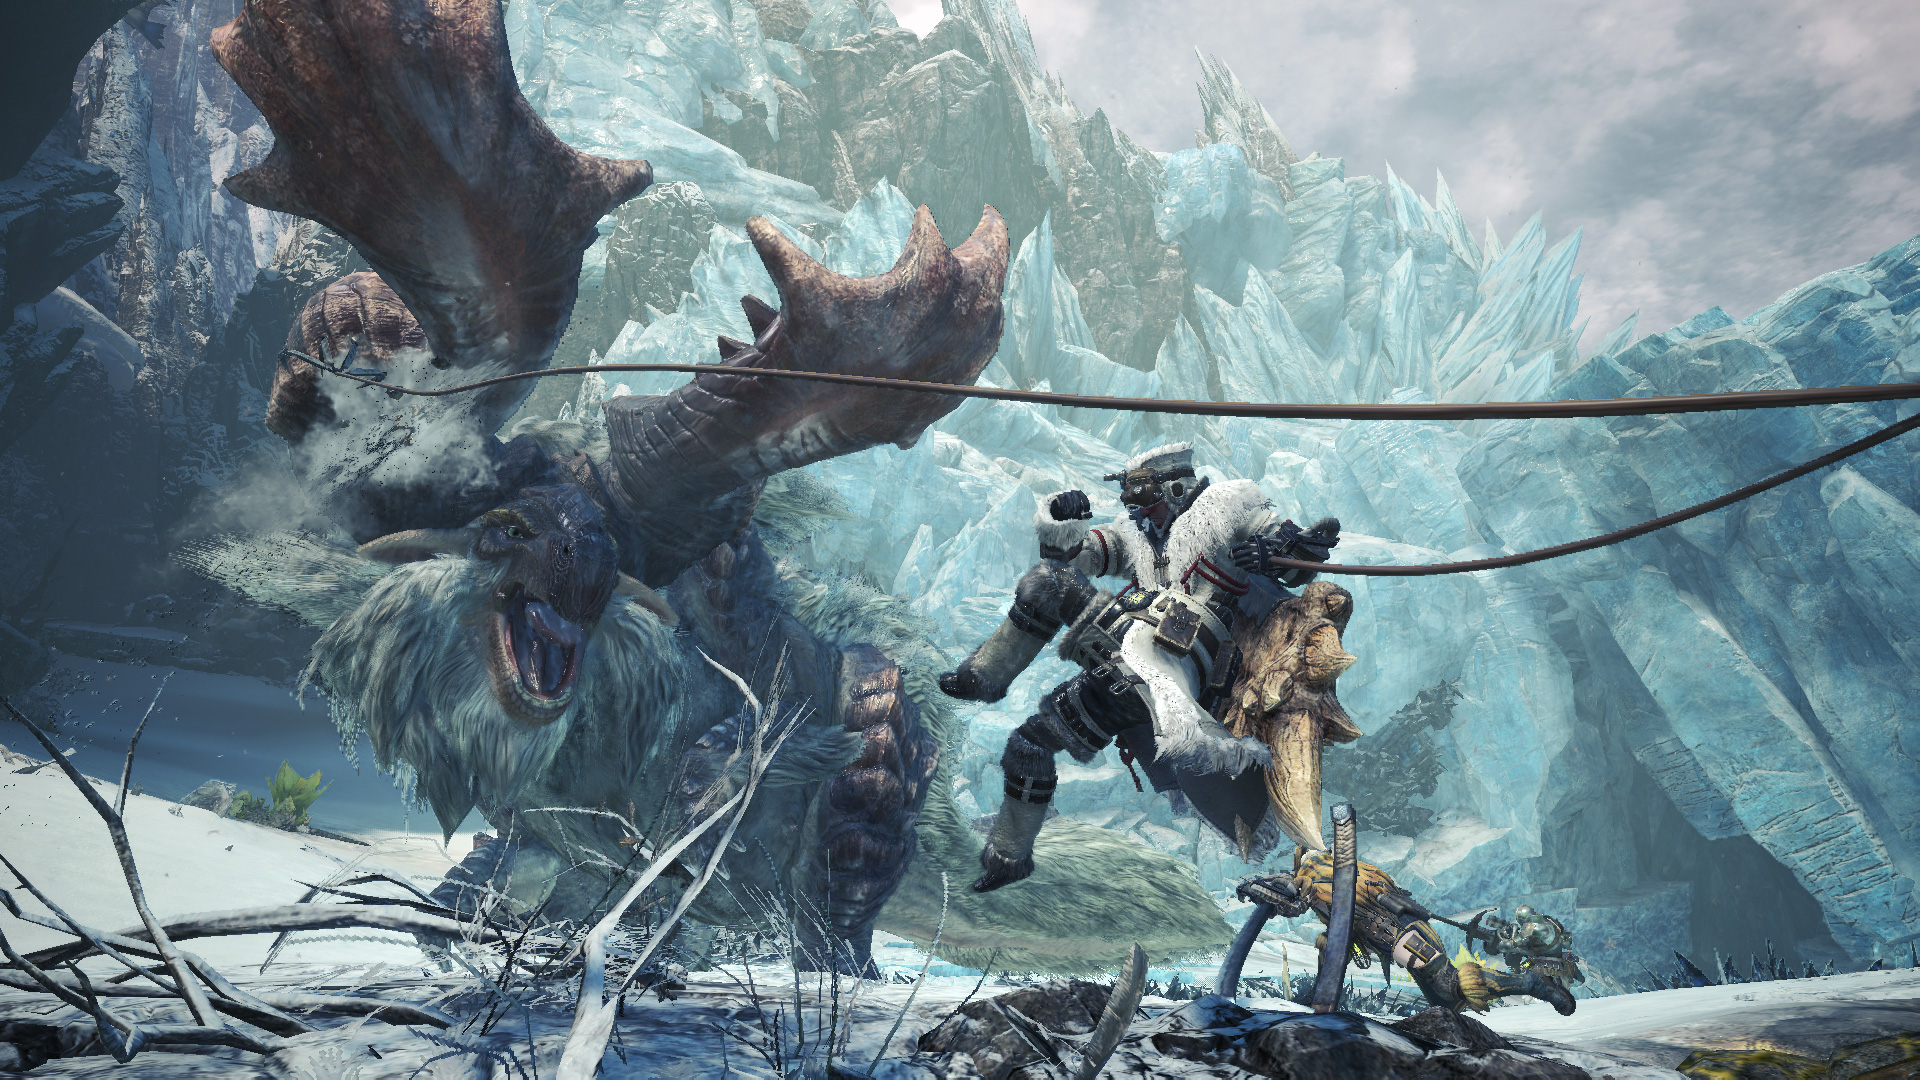 Mhw Iceborne Guide Tips To Prepare For The Frosty Expansion Pc